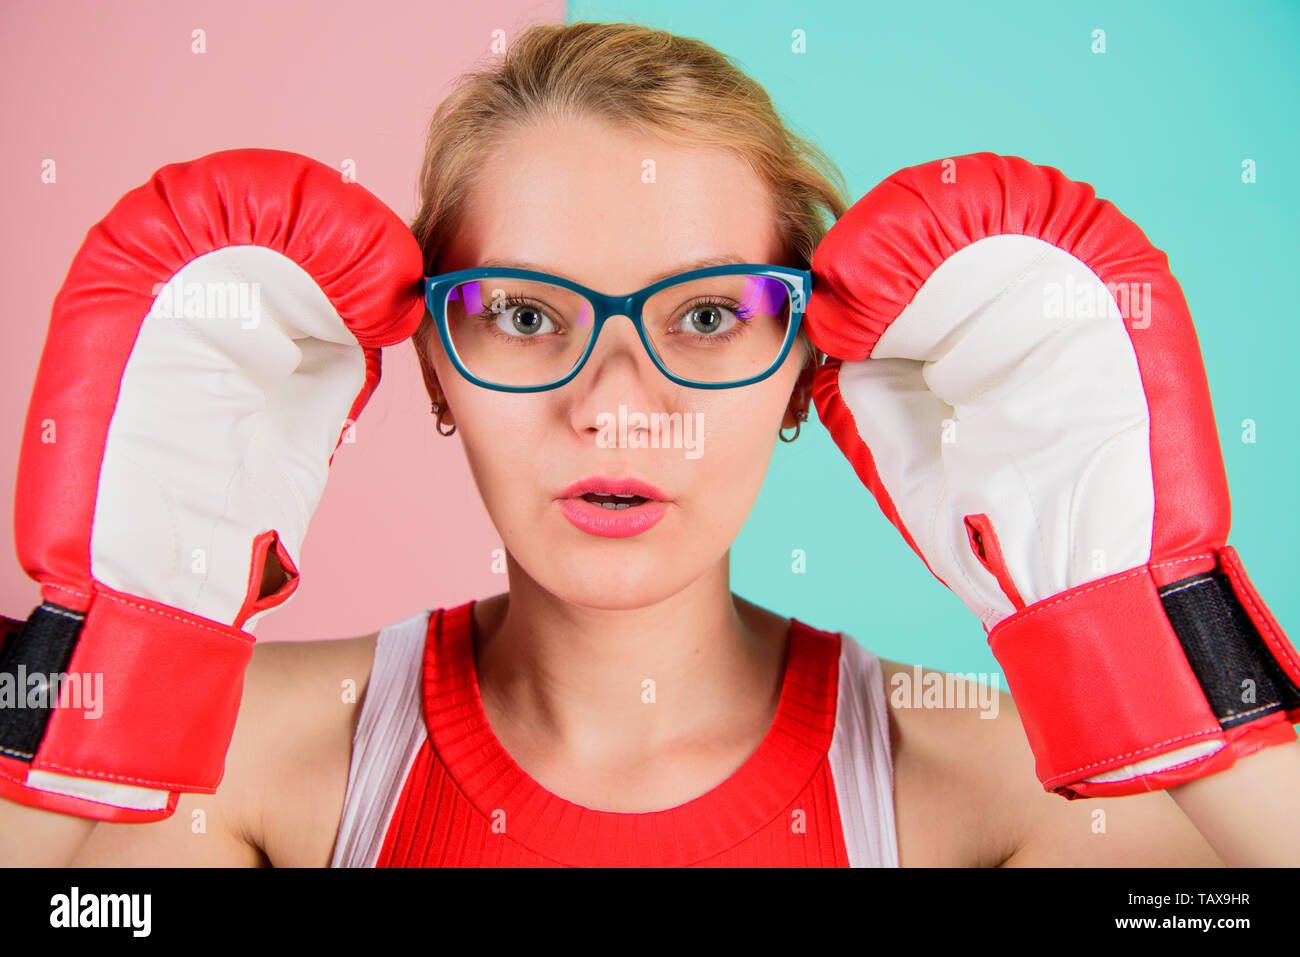 Strong mentally and physically. Smart and strong. Woman boxing gloves adjust eyeglasses. Win with strength or intellect. Strong intellect victory pledge. Know how defend myself. Confident her power. - Stock Image